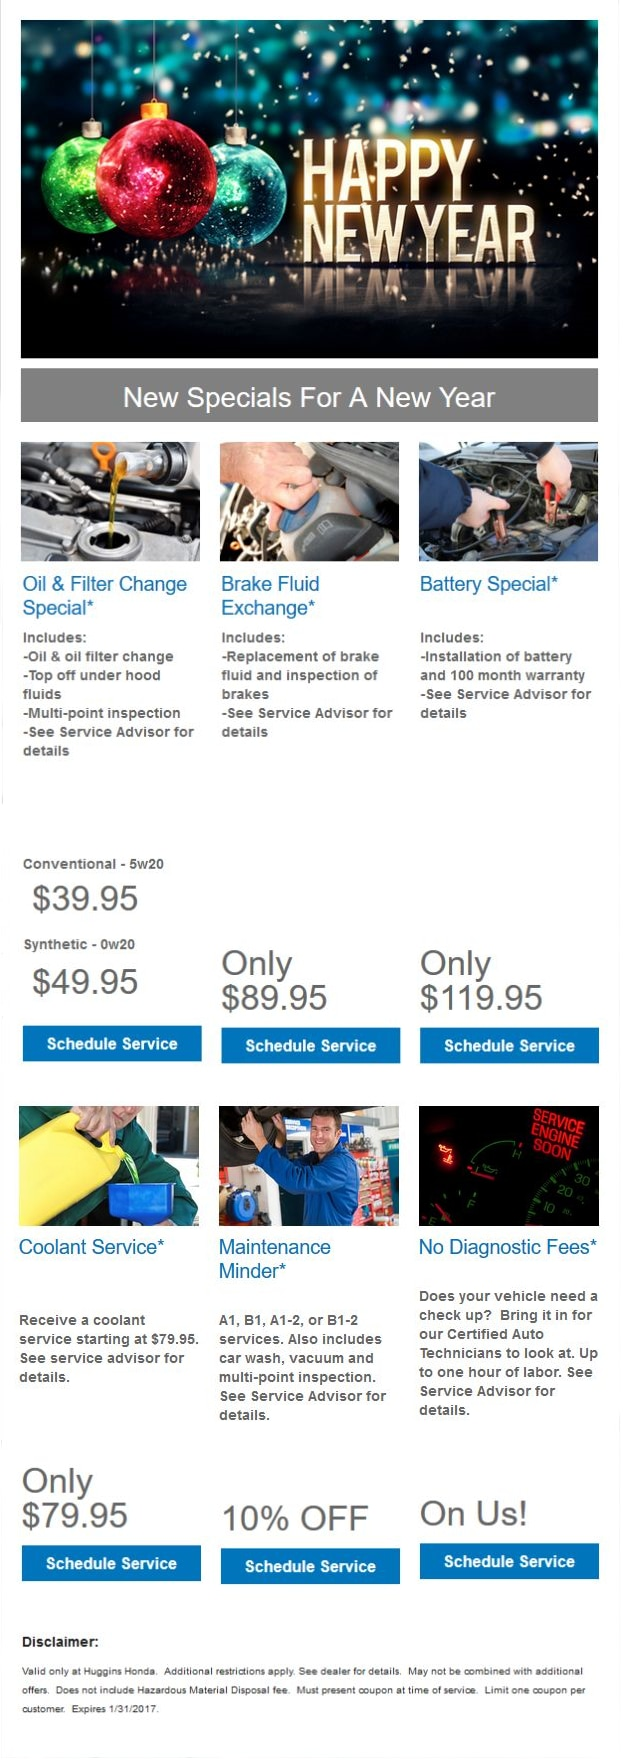 Honda Service Specials At Huggins Honda Serving Fort Worth TX